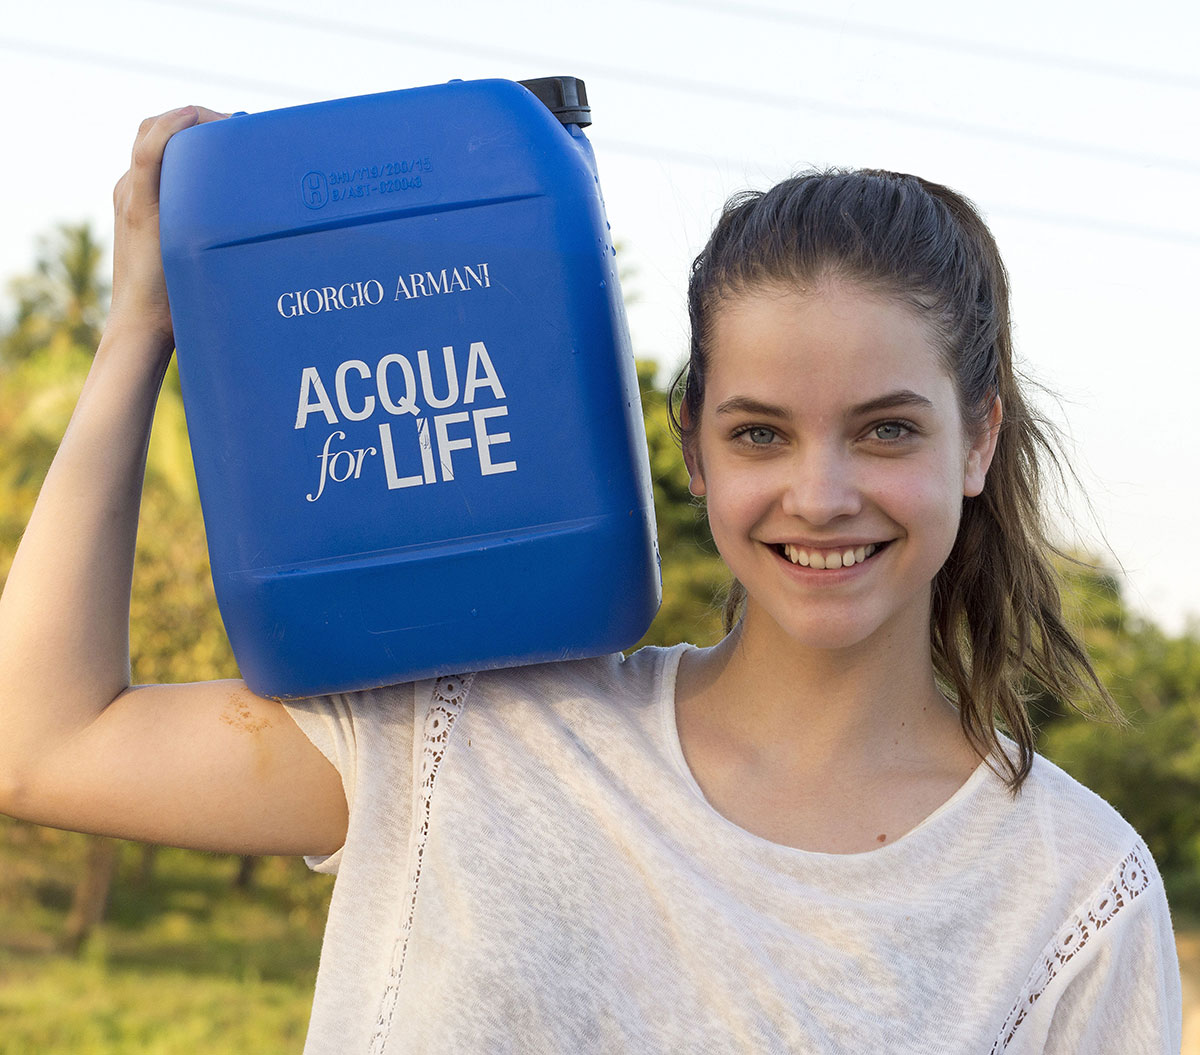 Acqua for Life - Your voice is powerful